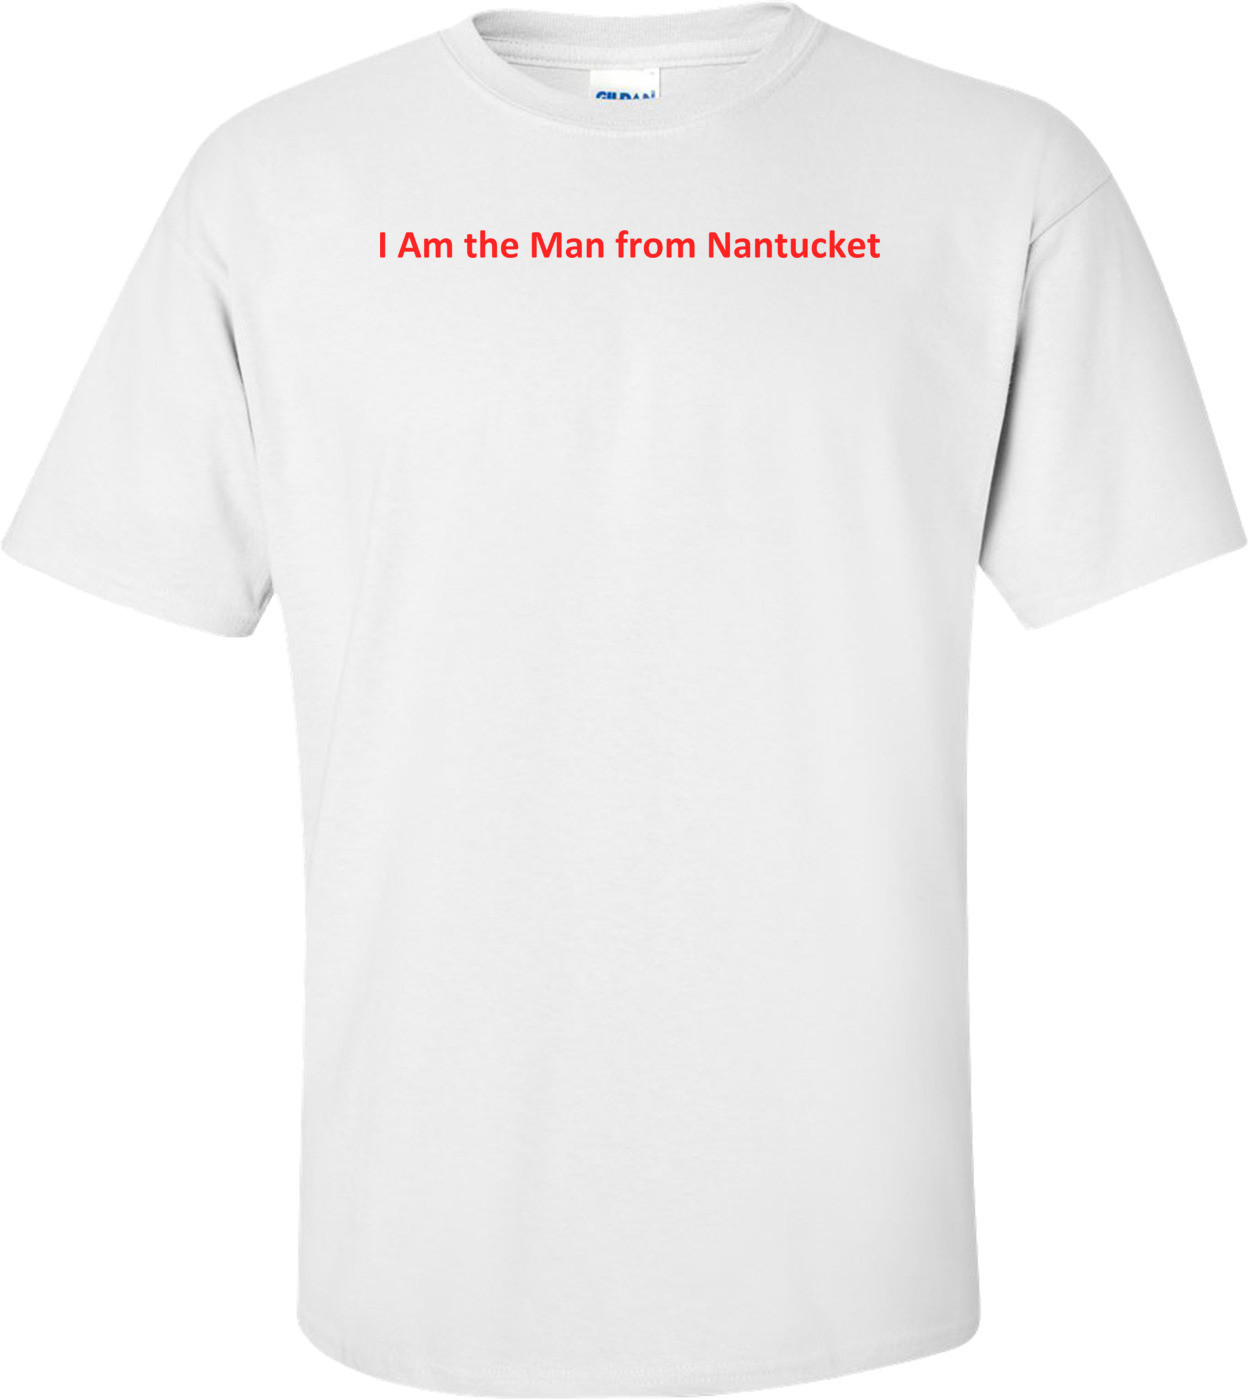 I Am the Man from Nantucket Shirt